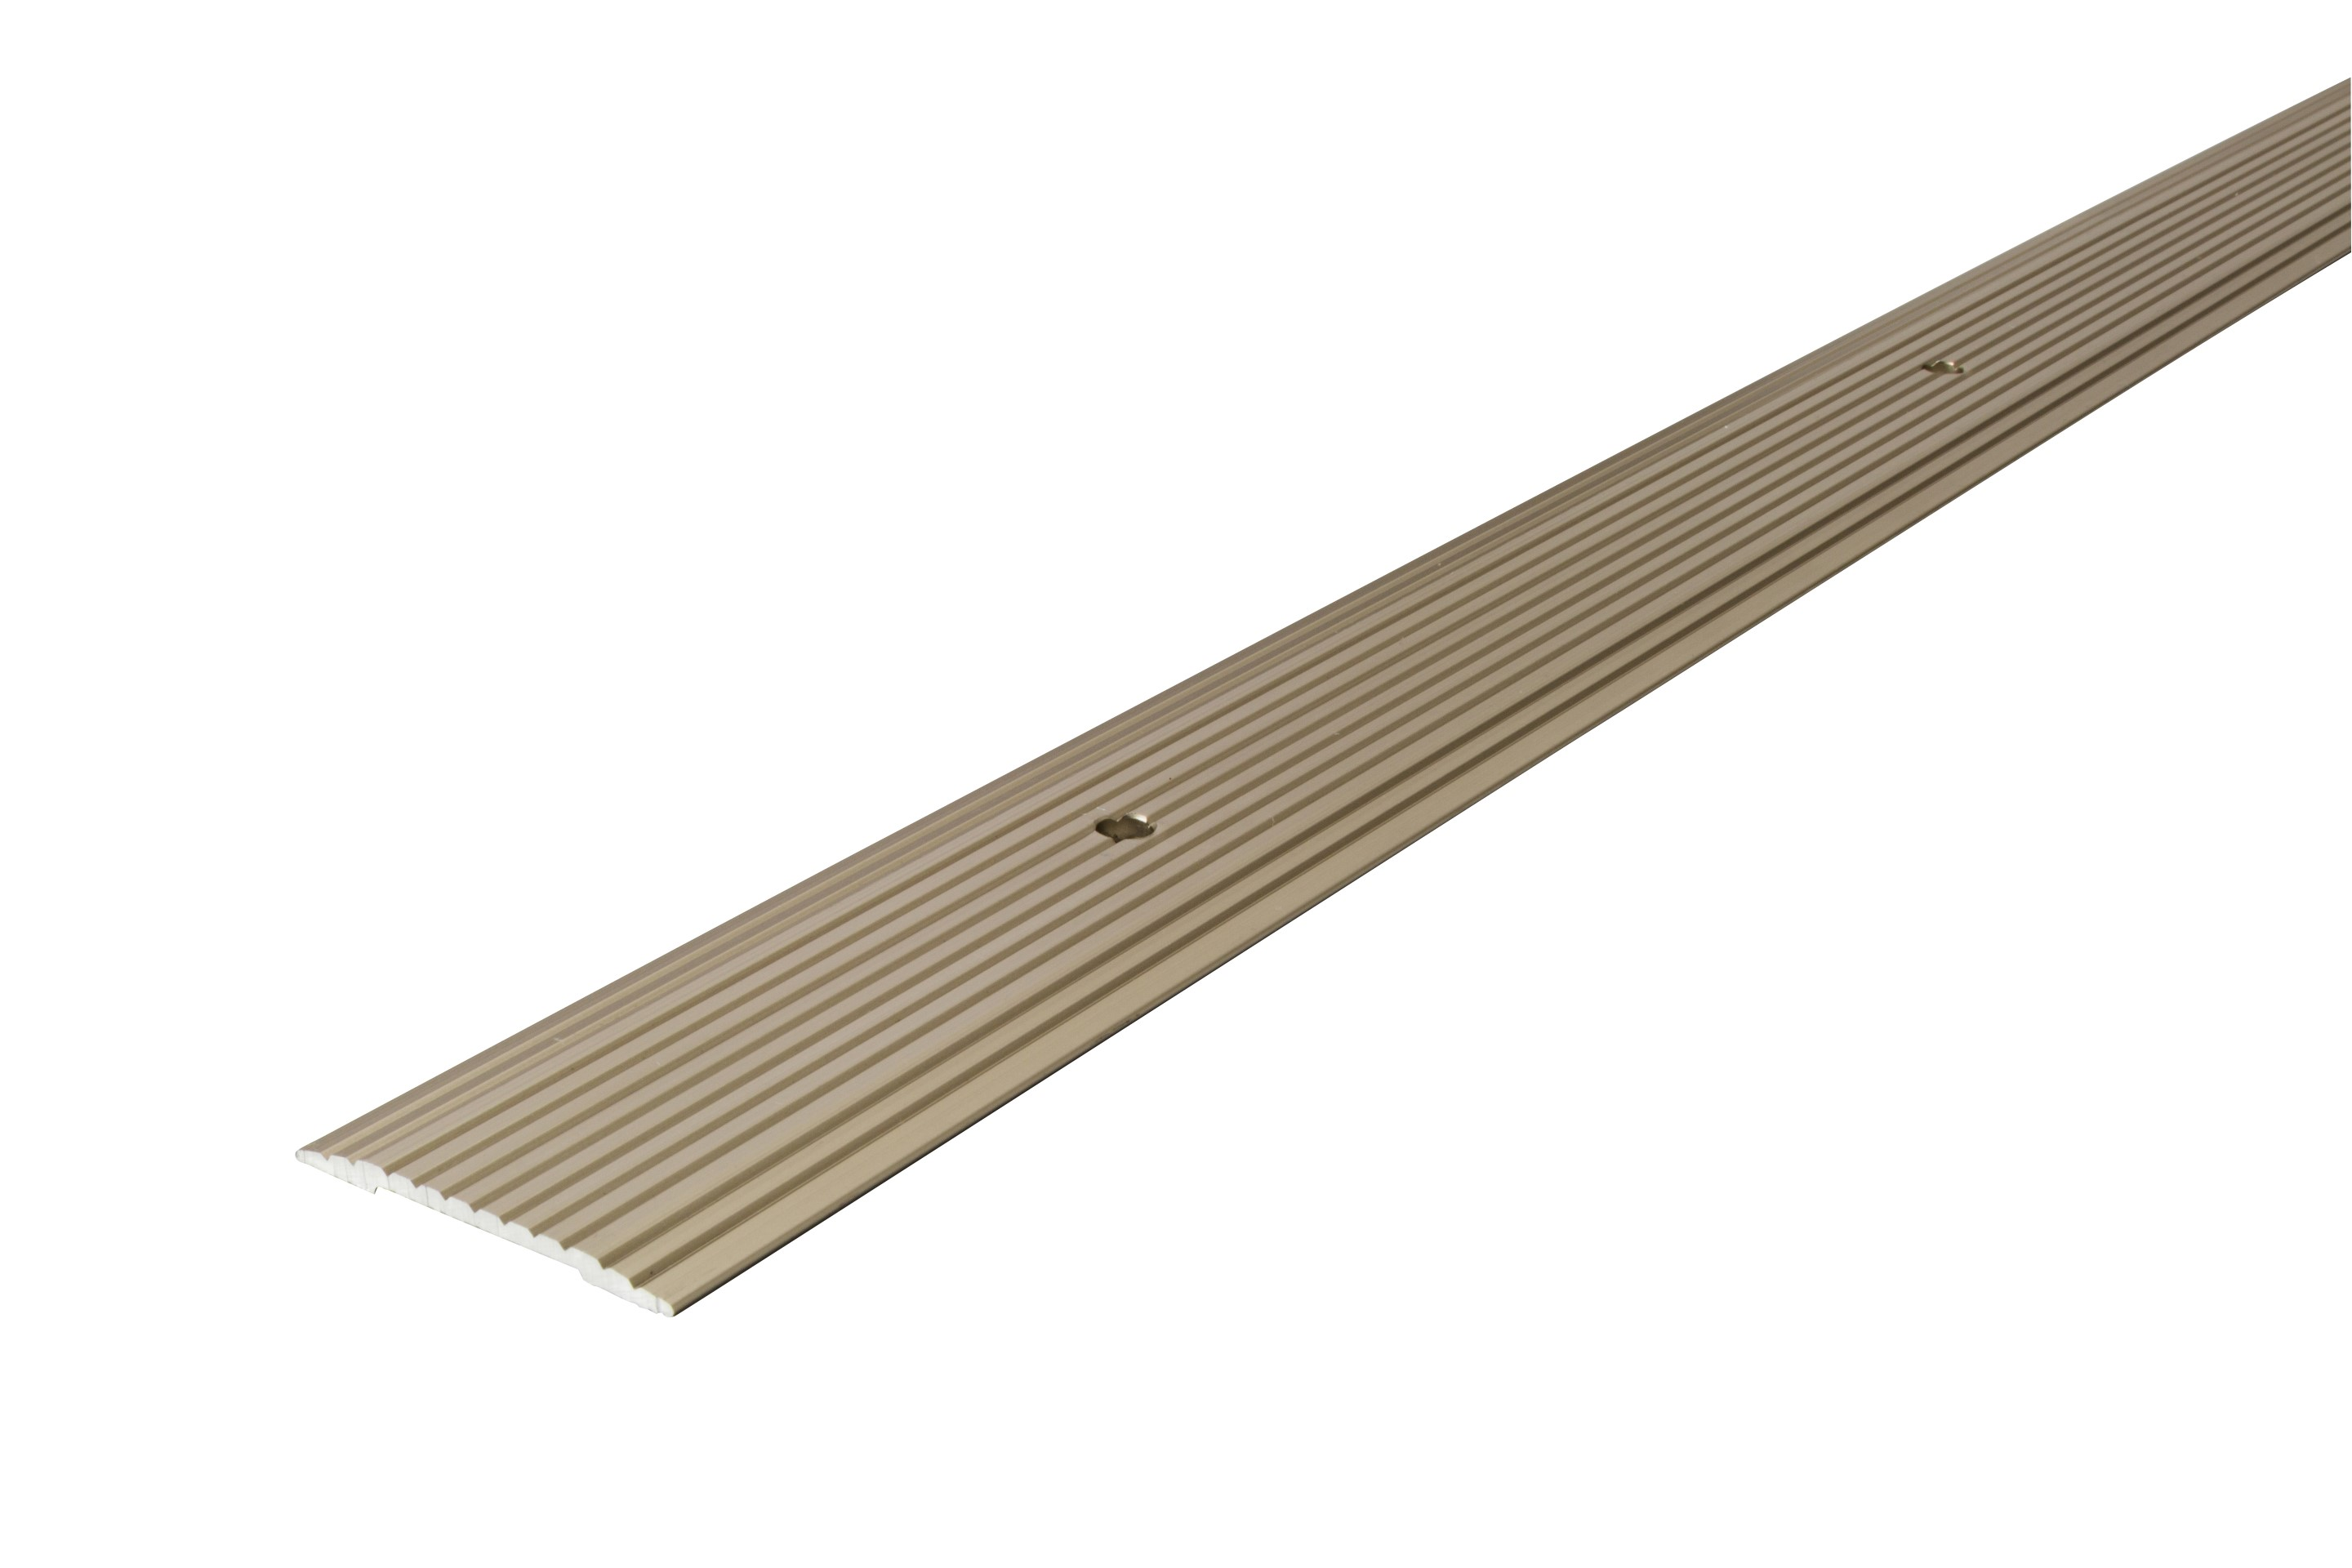 M-D Building Products 66019 M-D Smooth Seam Binder Aluminum quot quot 36 in L X 1-1//4 in W Polished